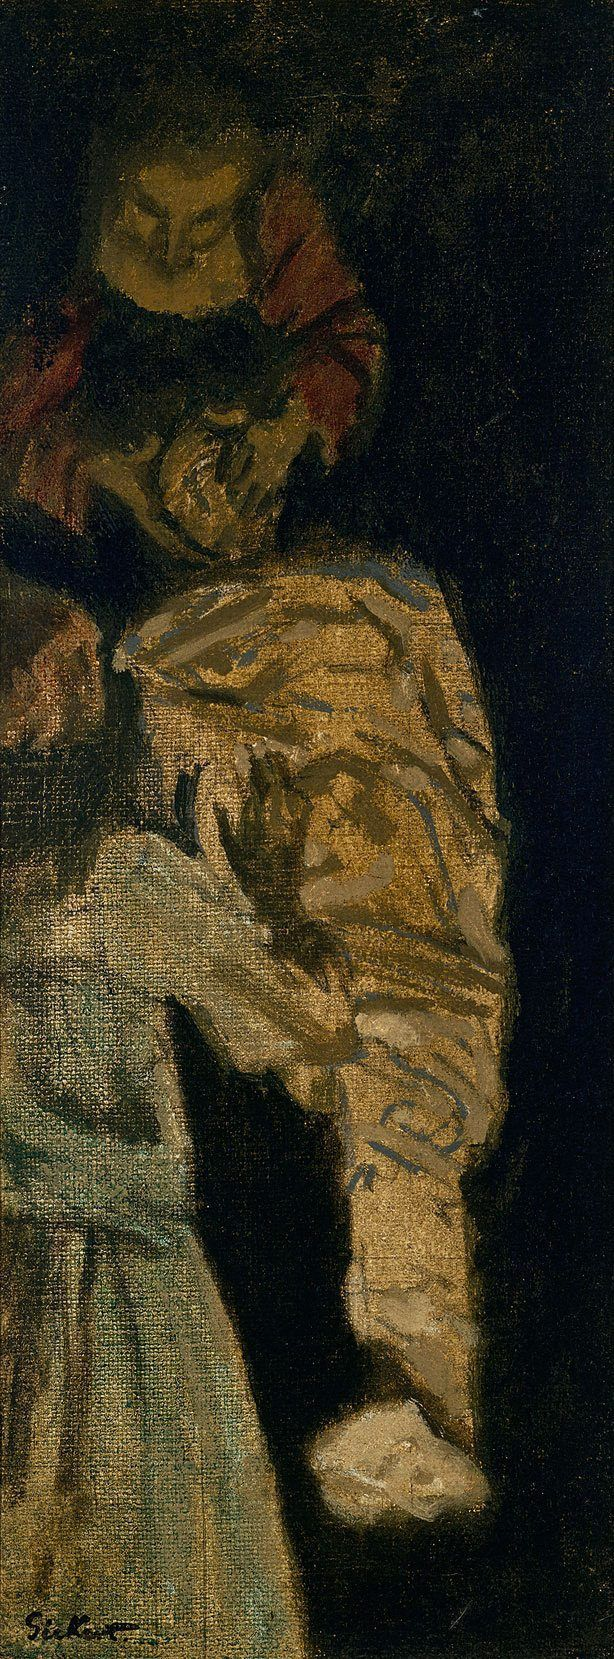 Sketch for The Raising of Lazarus (1929-32) by Walter Richard Sickert. In 1929 Walter Sickert was given a life-size lay figure, alleged to have once belonged to William Hogarth, and the sight of it being delivered to his studio inspired him to paint three works based on the event which he reinterpreted as the raising of Lazarus. This is the second sketch.